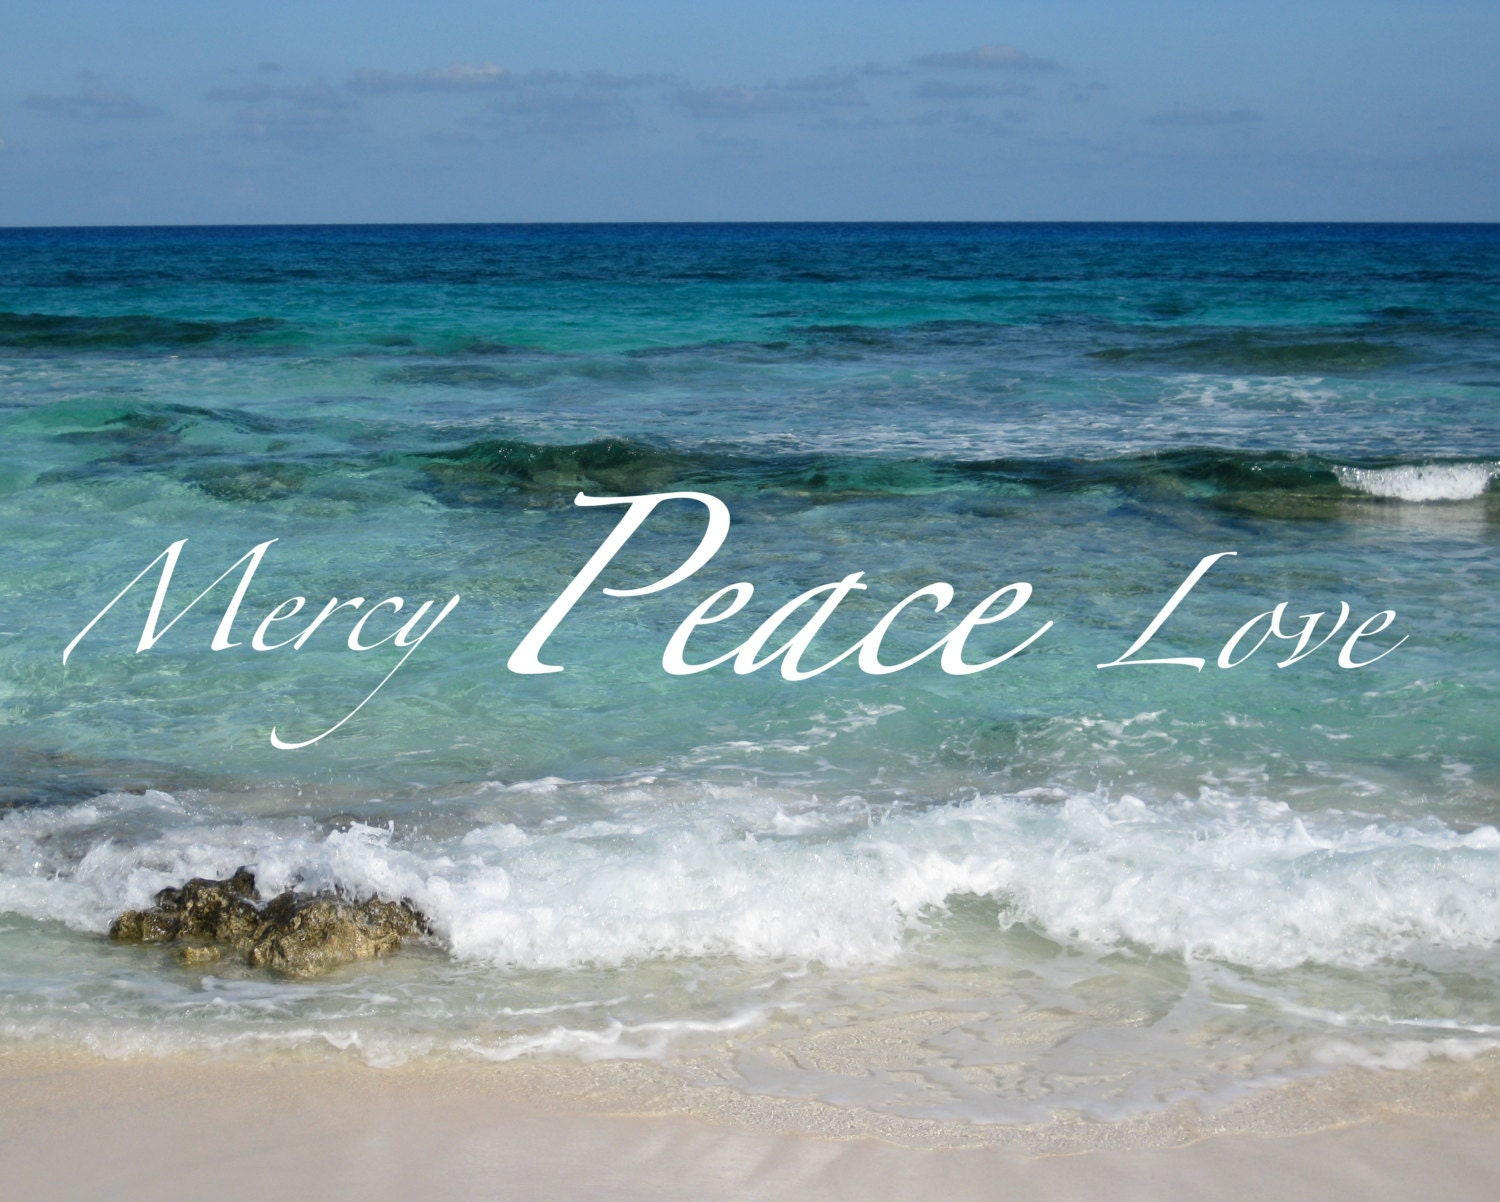 Bible Quotes About Peace Print Of Mercy Peace Love Ocean Bible Verse